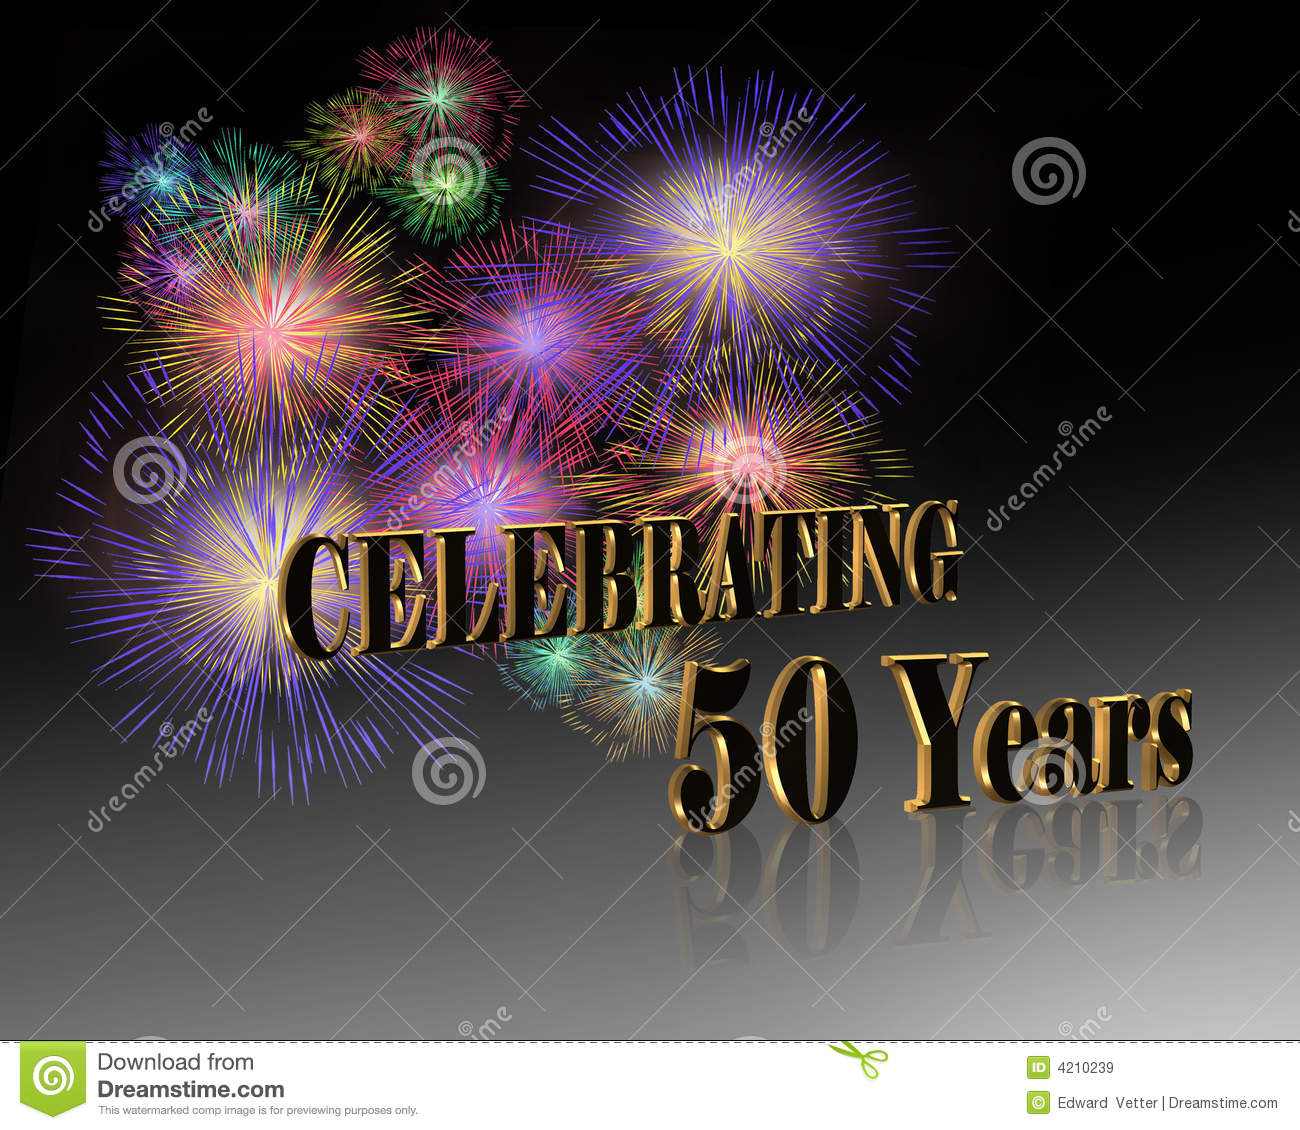 Th anniversary celebration royalty free stock images